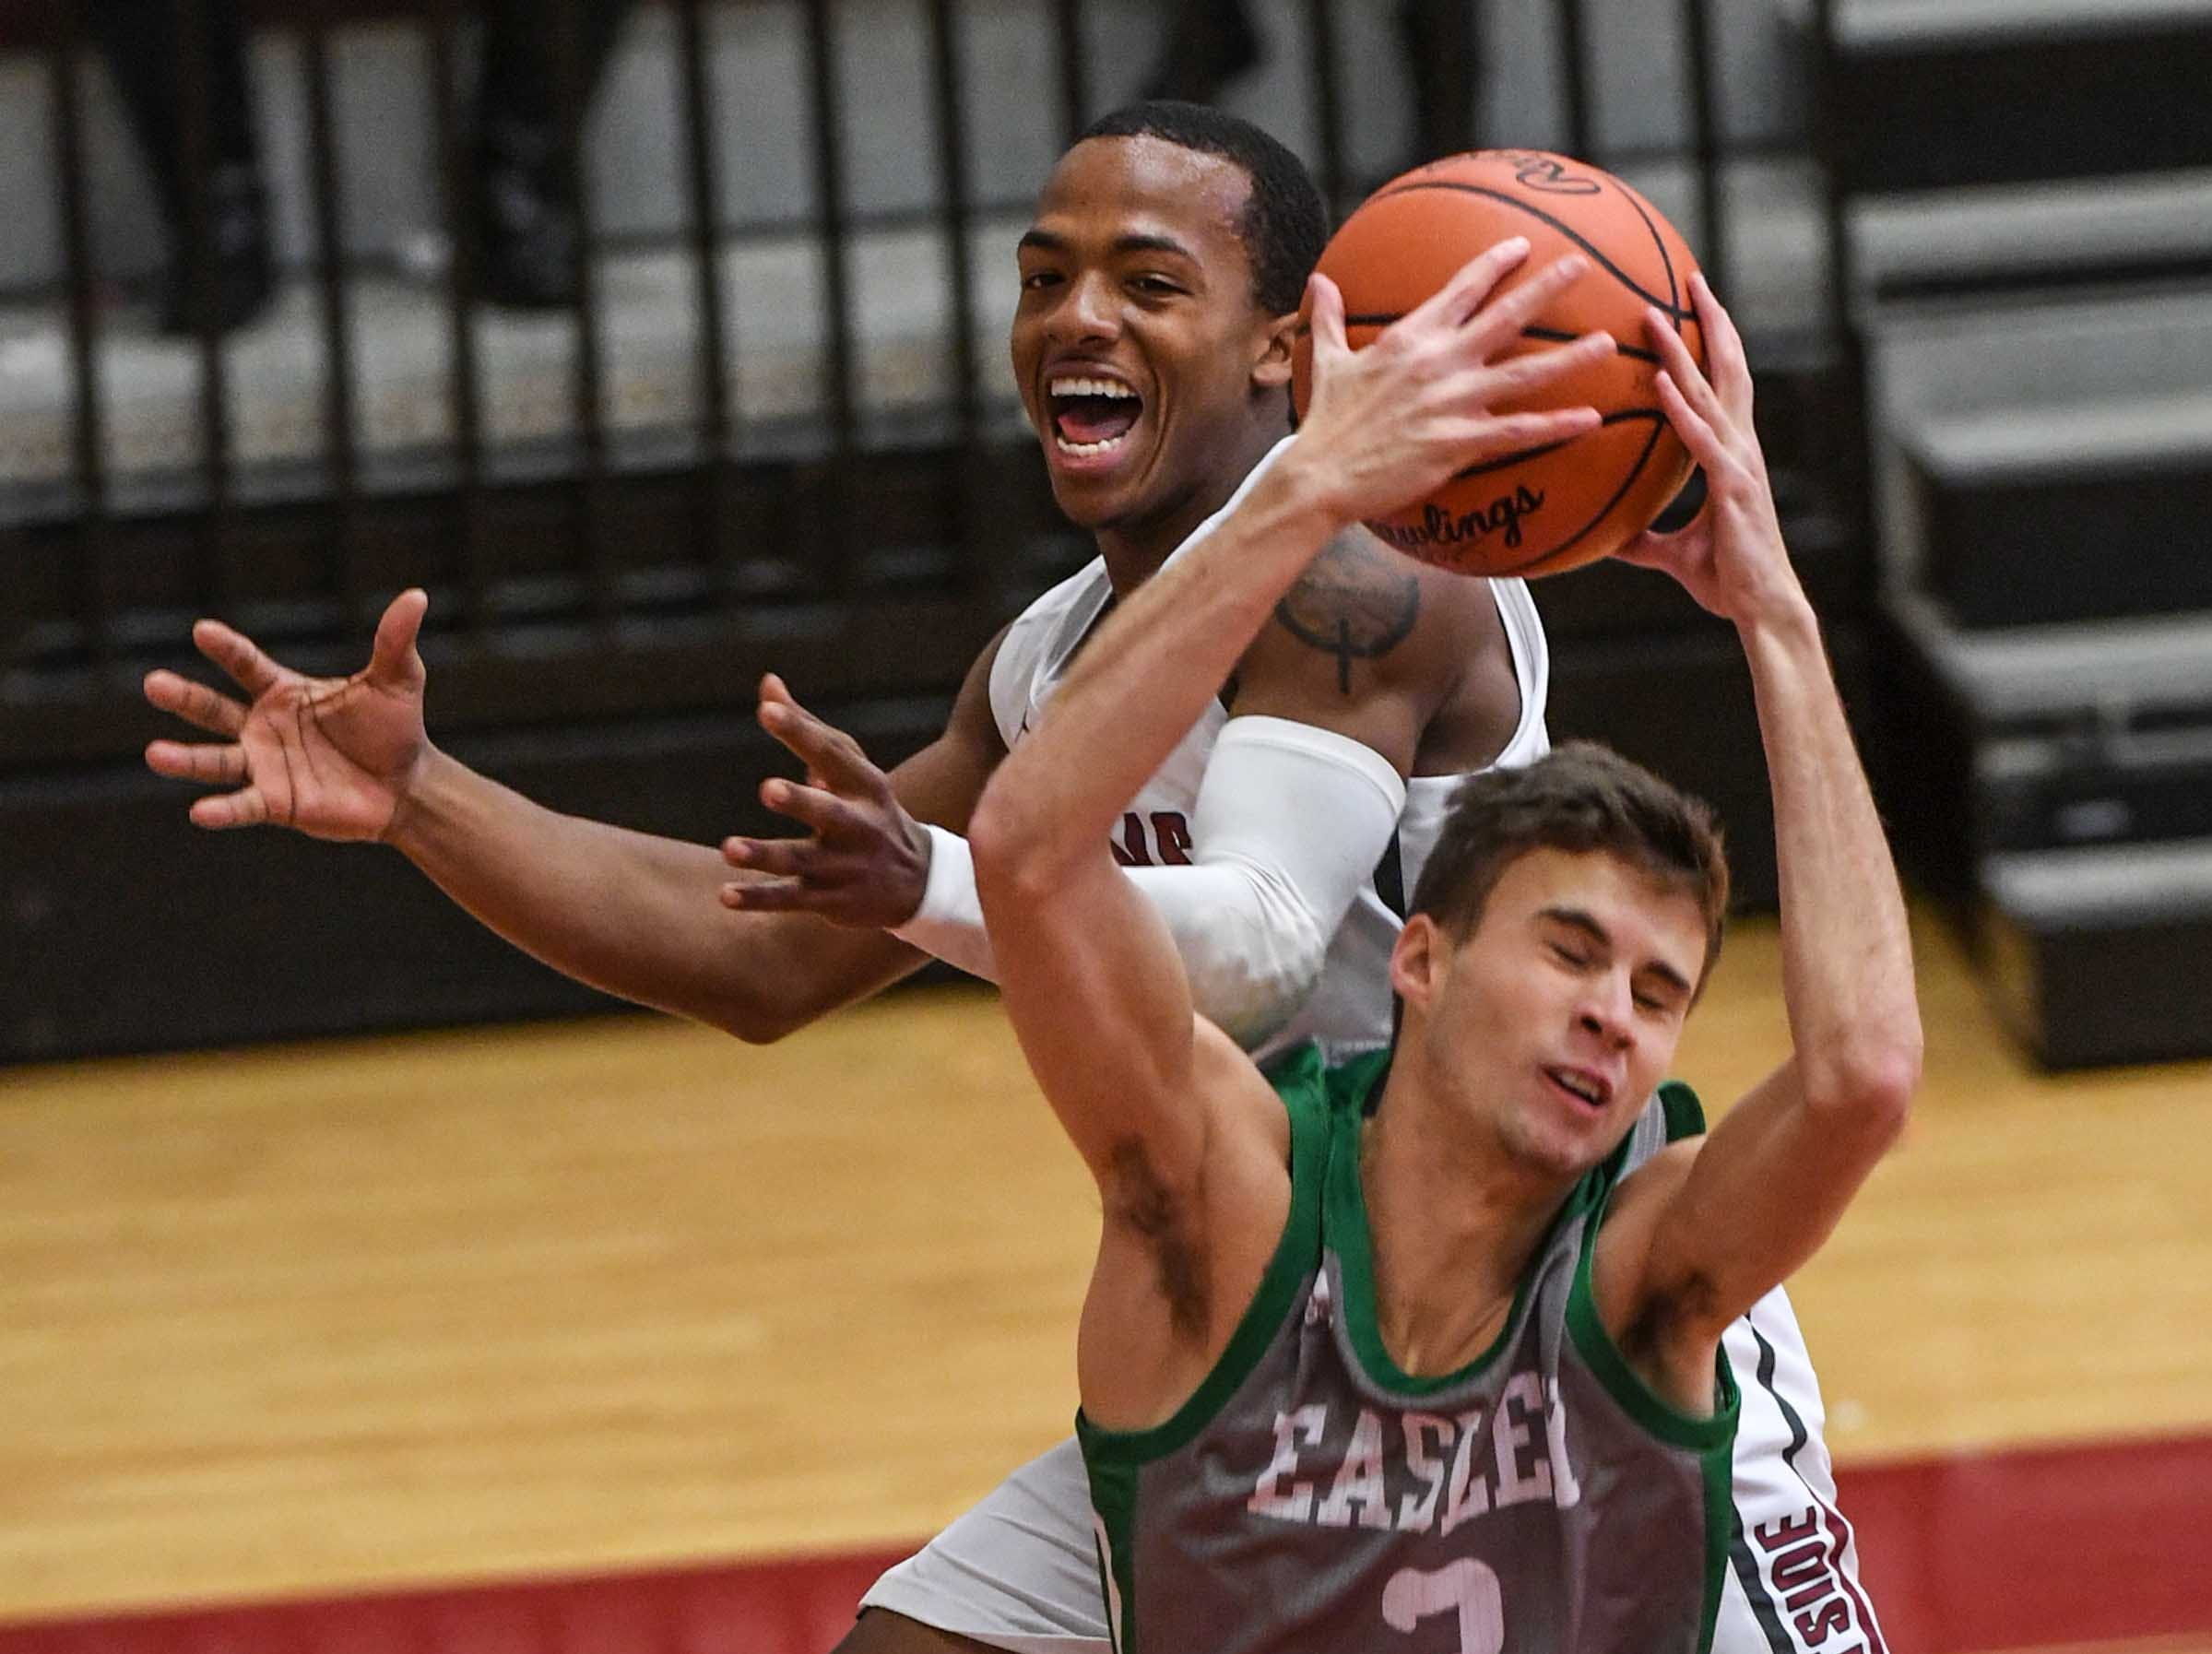 Westside senior Traye Carson(3) watches Easley senior Griffin Smith(3) rebound near him during the first quarter at Westside High School in Anderson on Friday.